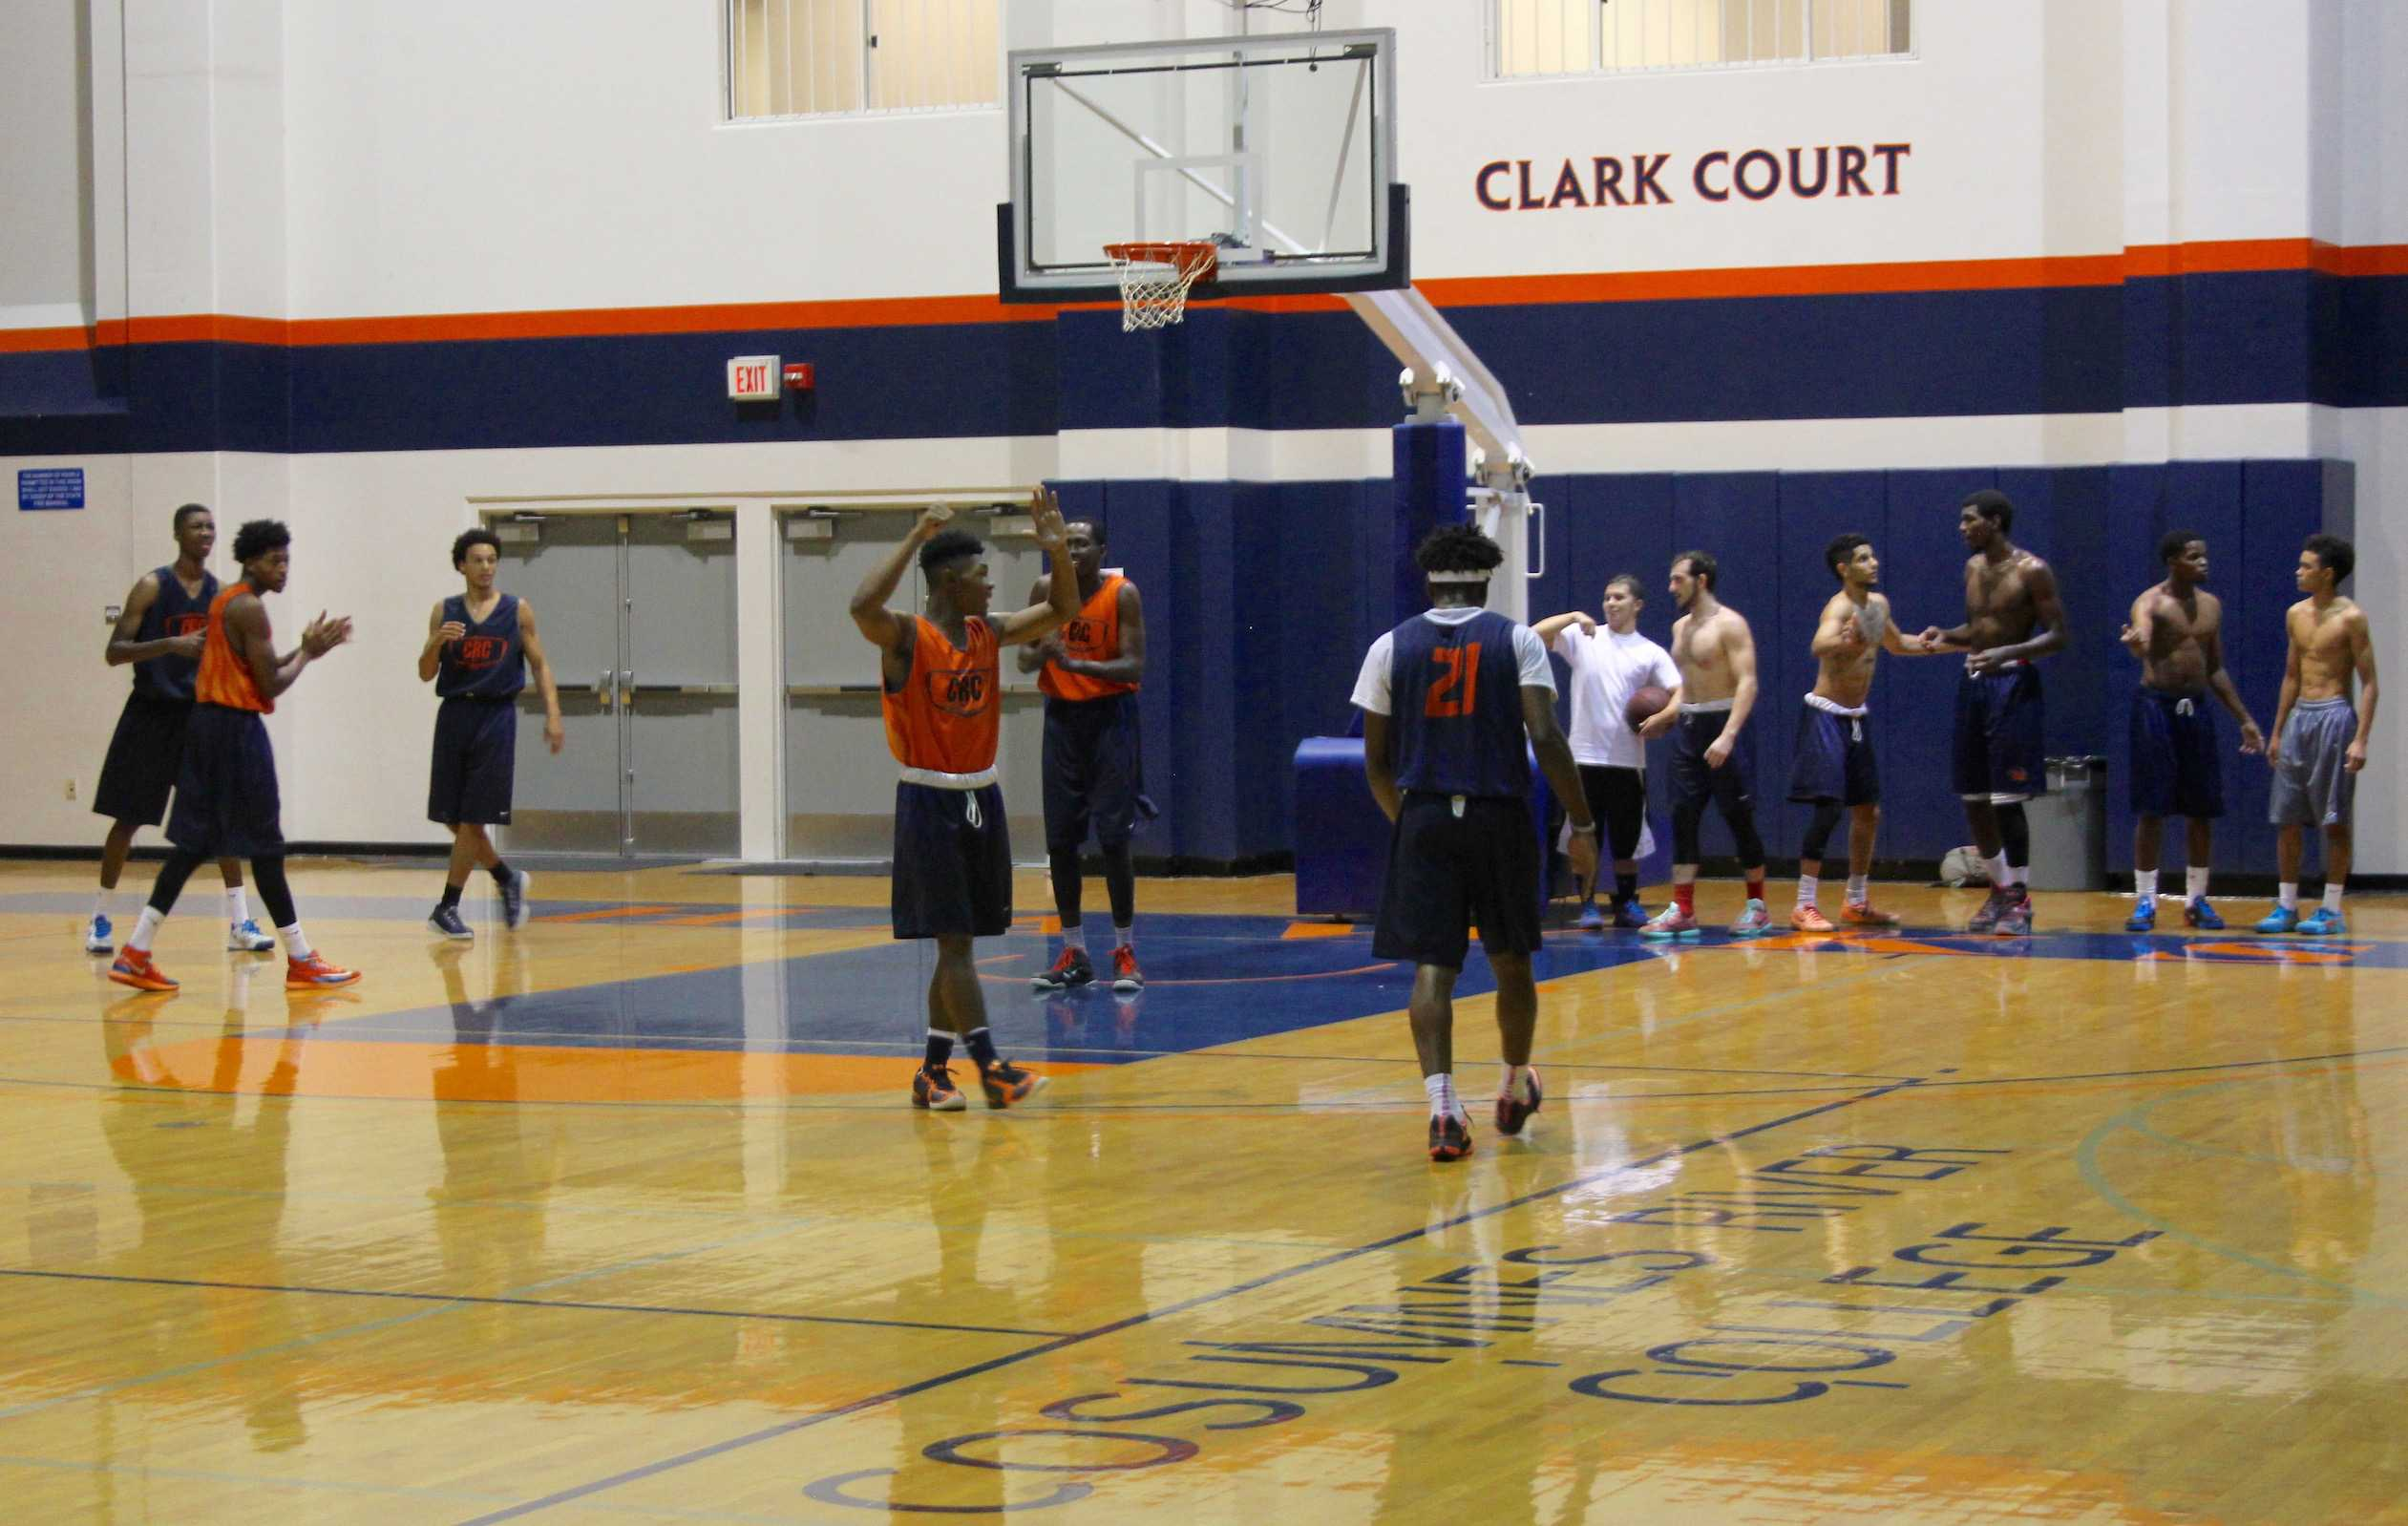 Men's basketball team practicing in preparation for upcoming season